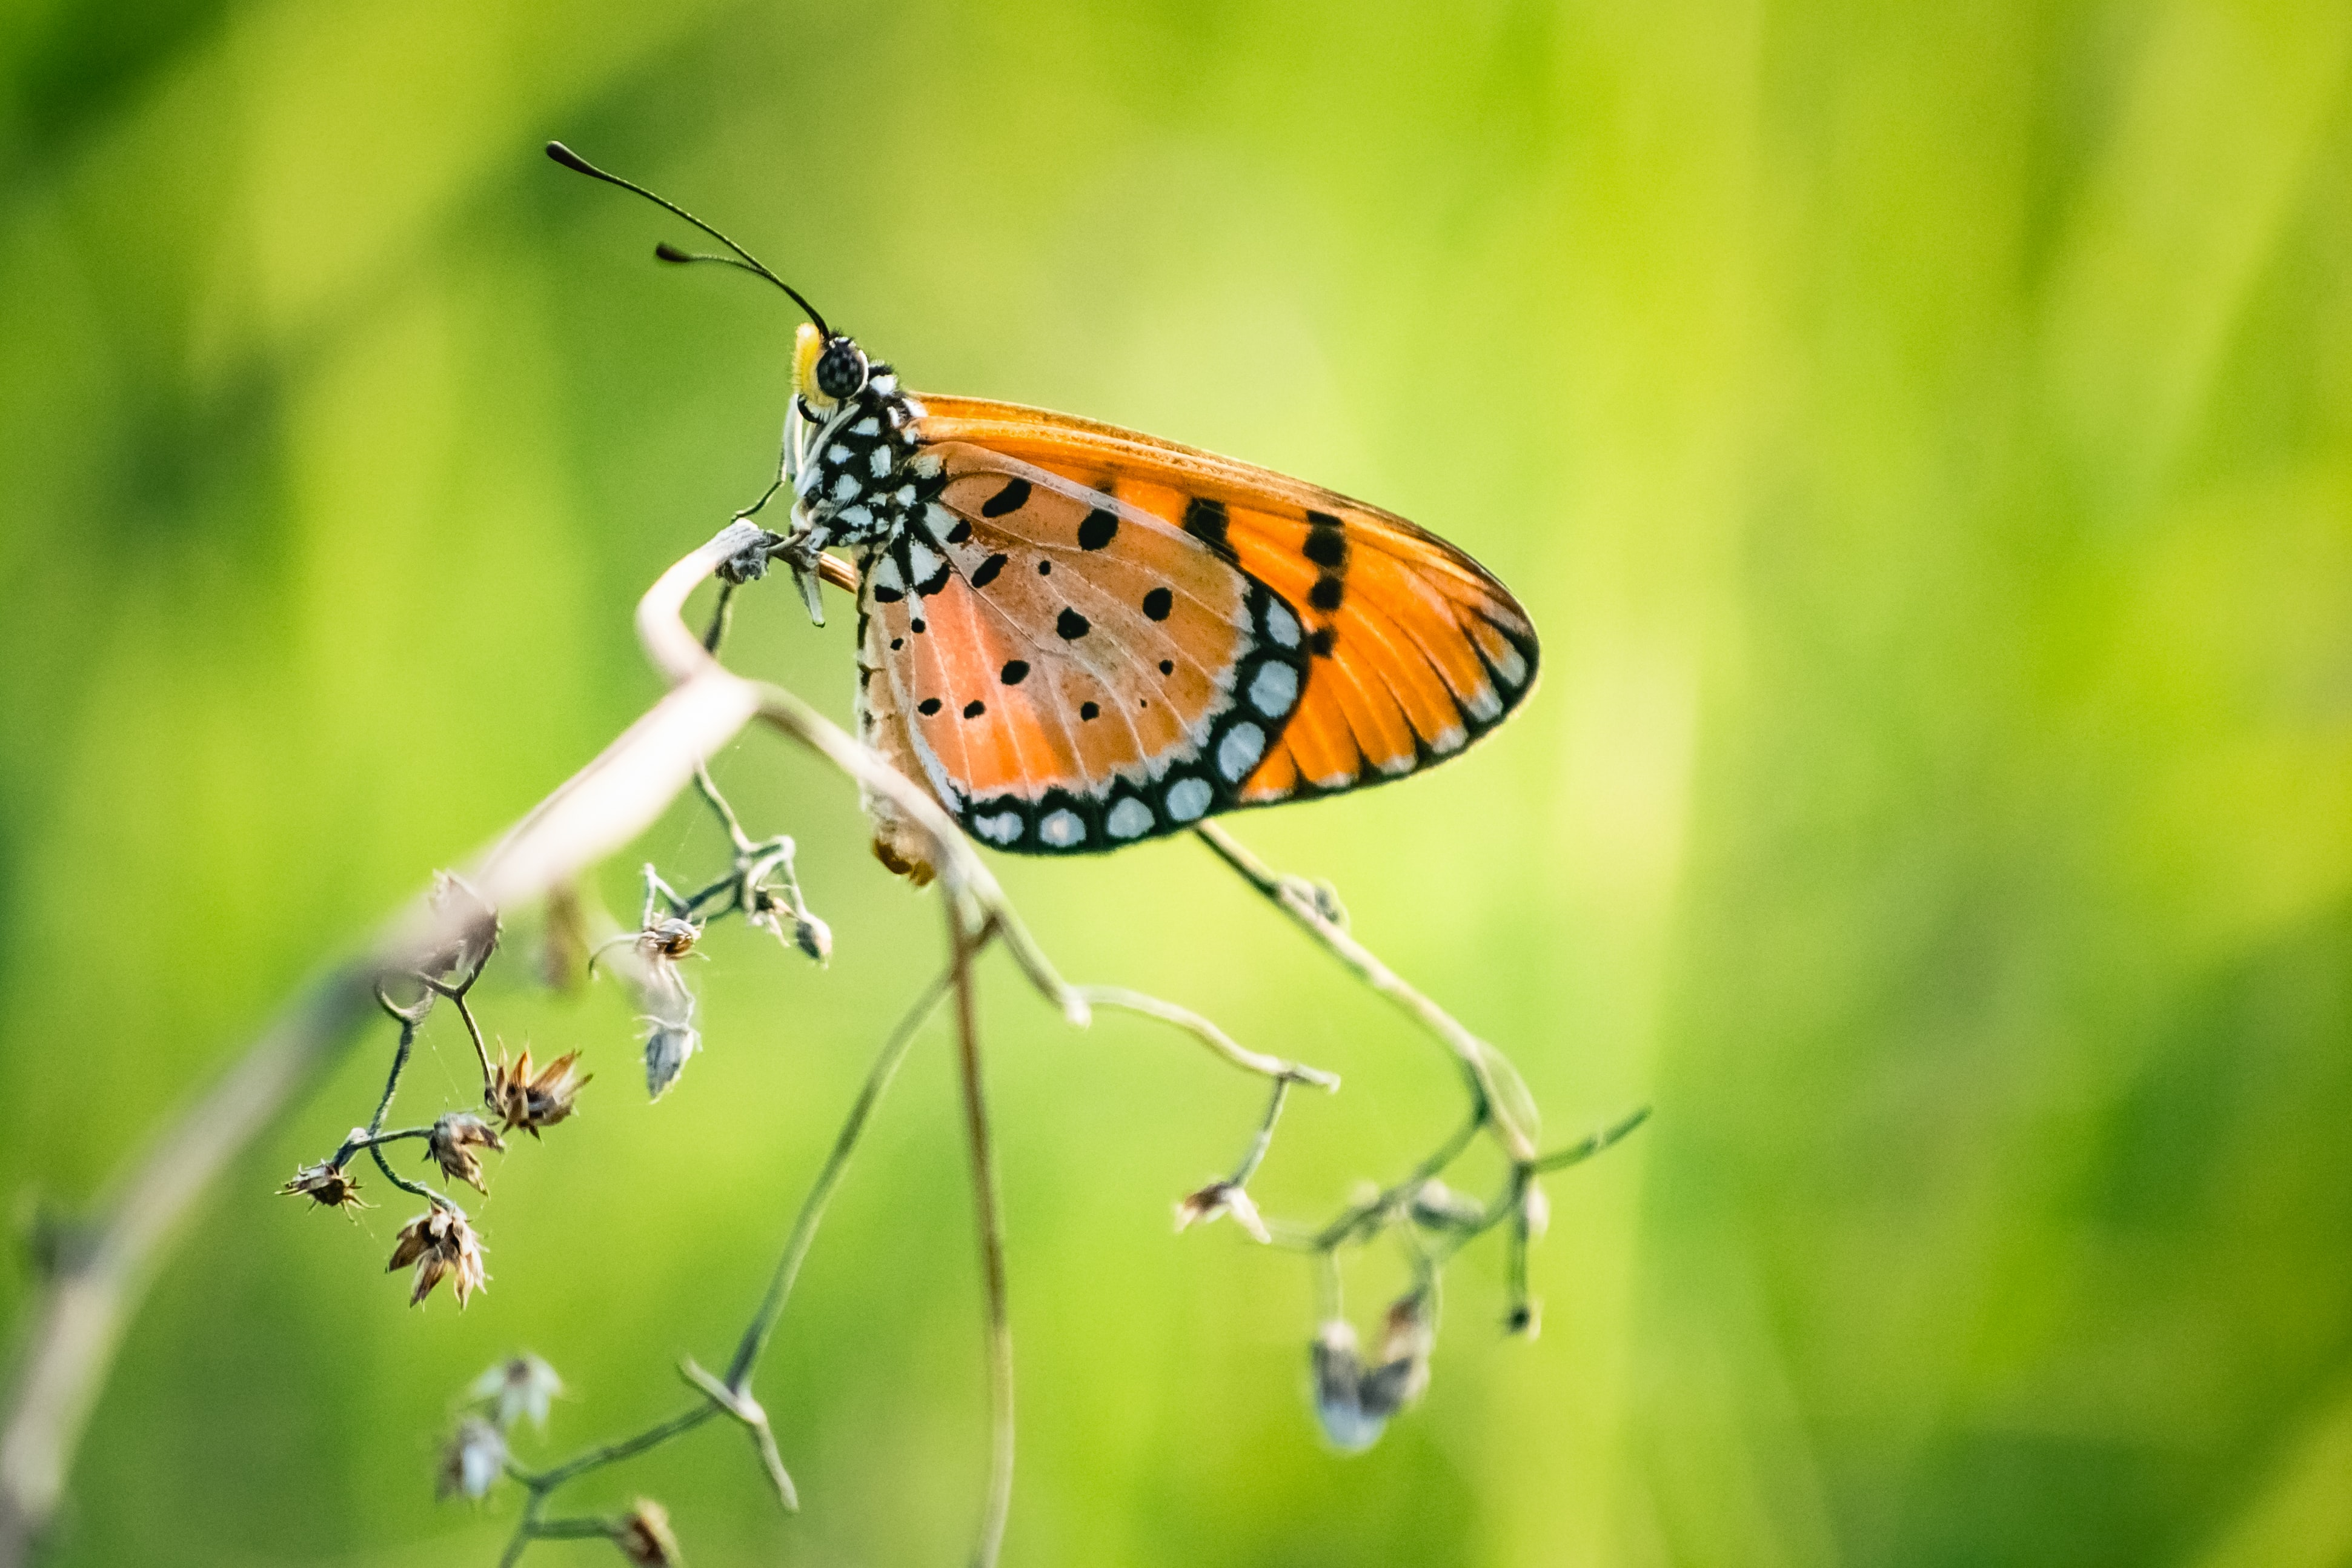 selective focus photography of orange and black morpho butterfly on twig during daytime